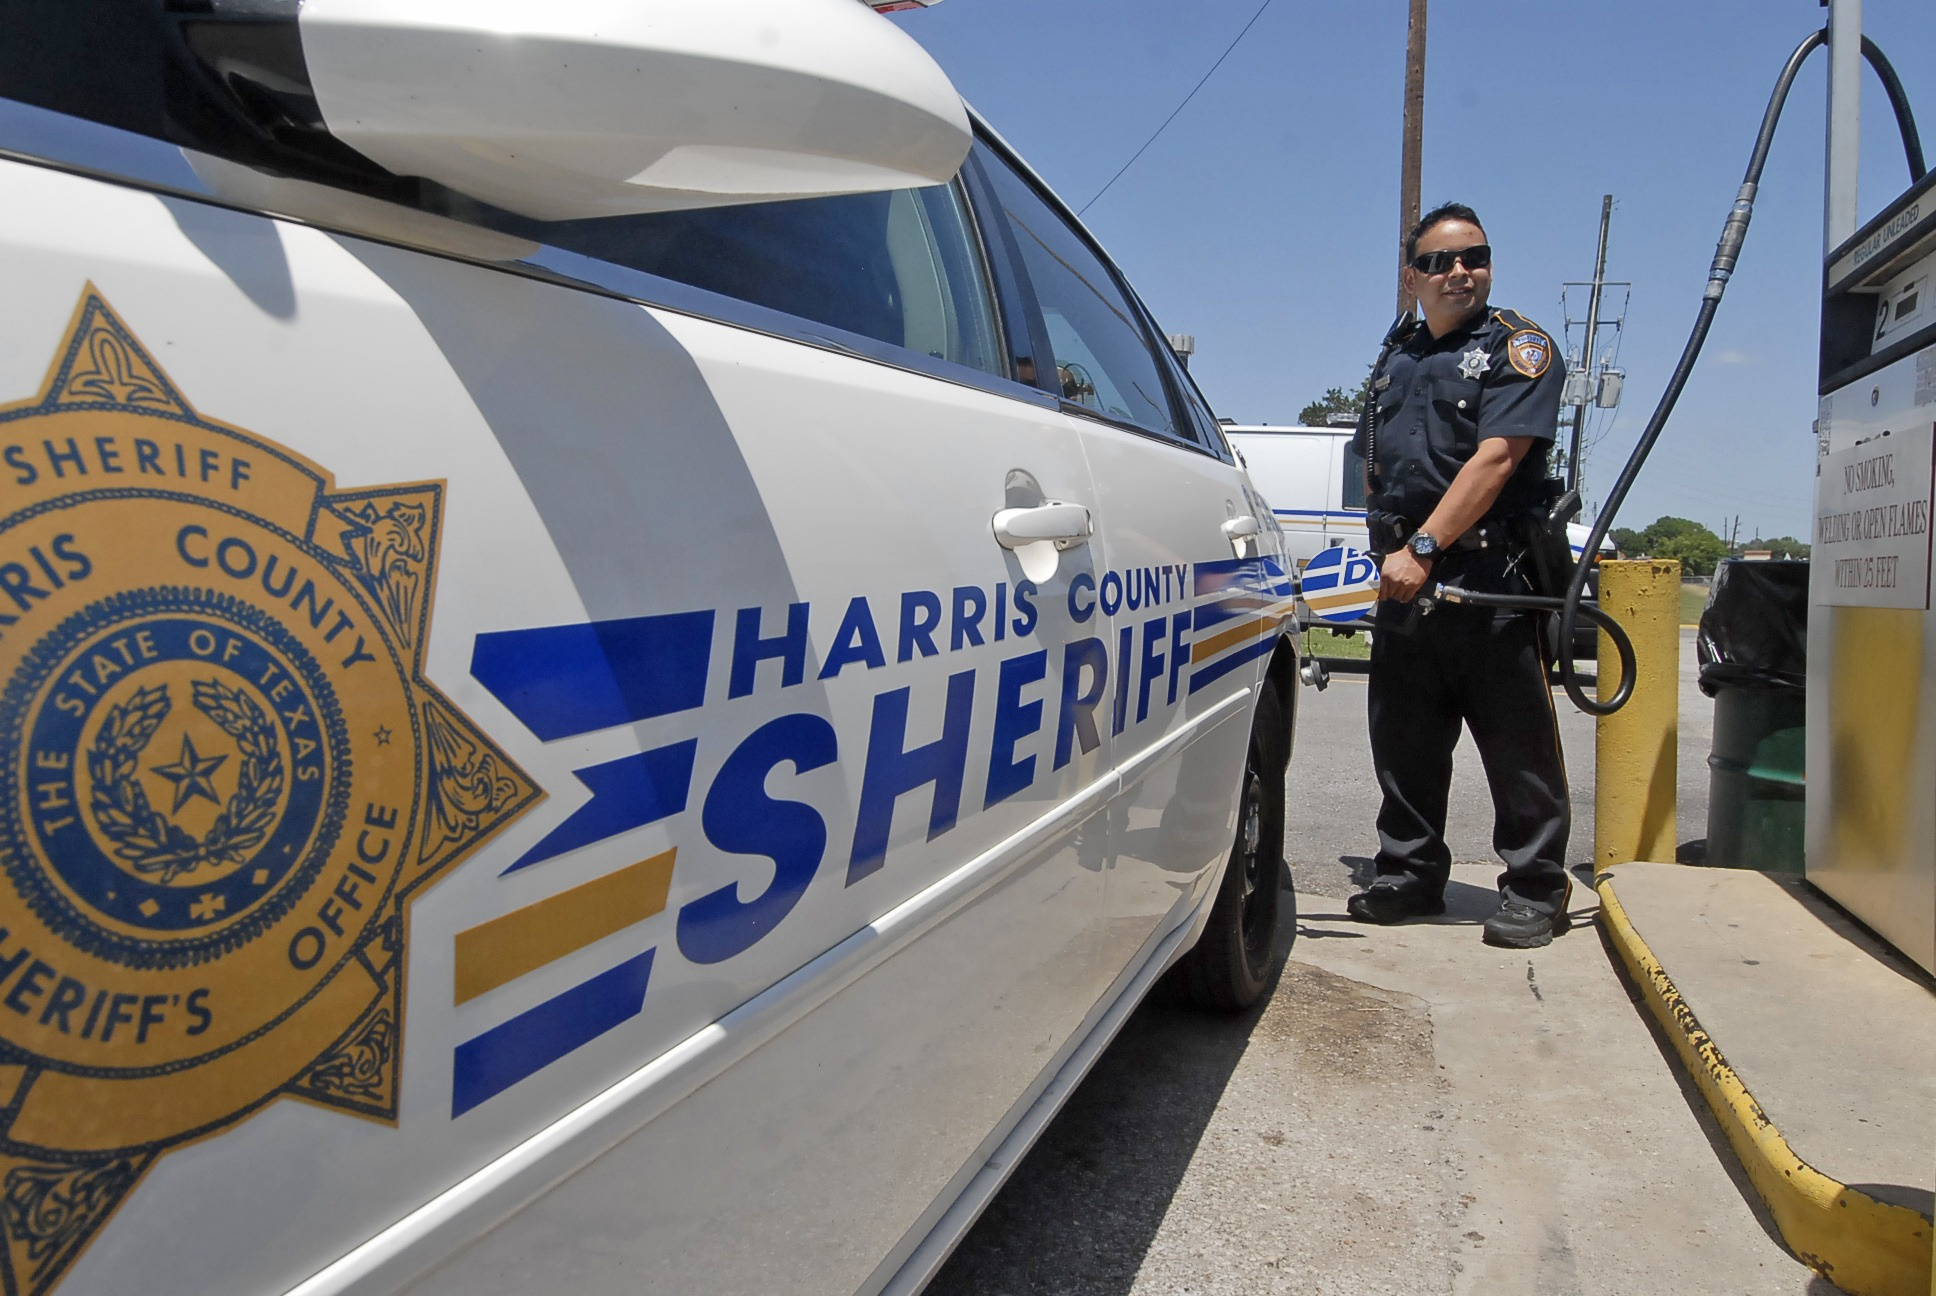 Harris County man intentionally run over by garbarge truck, police say